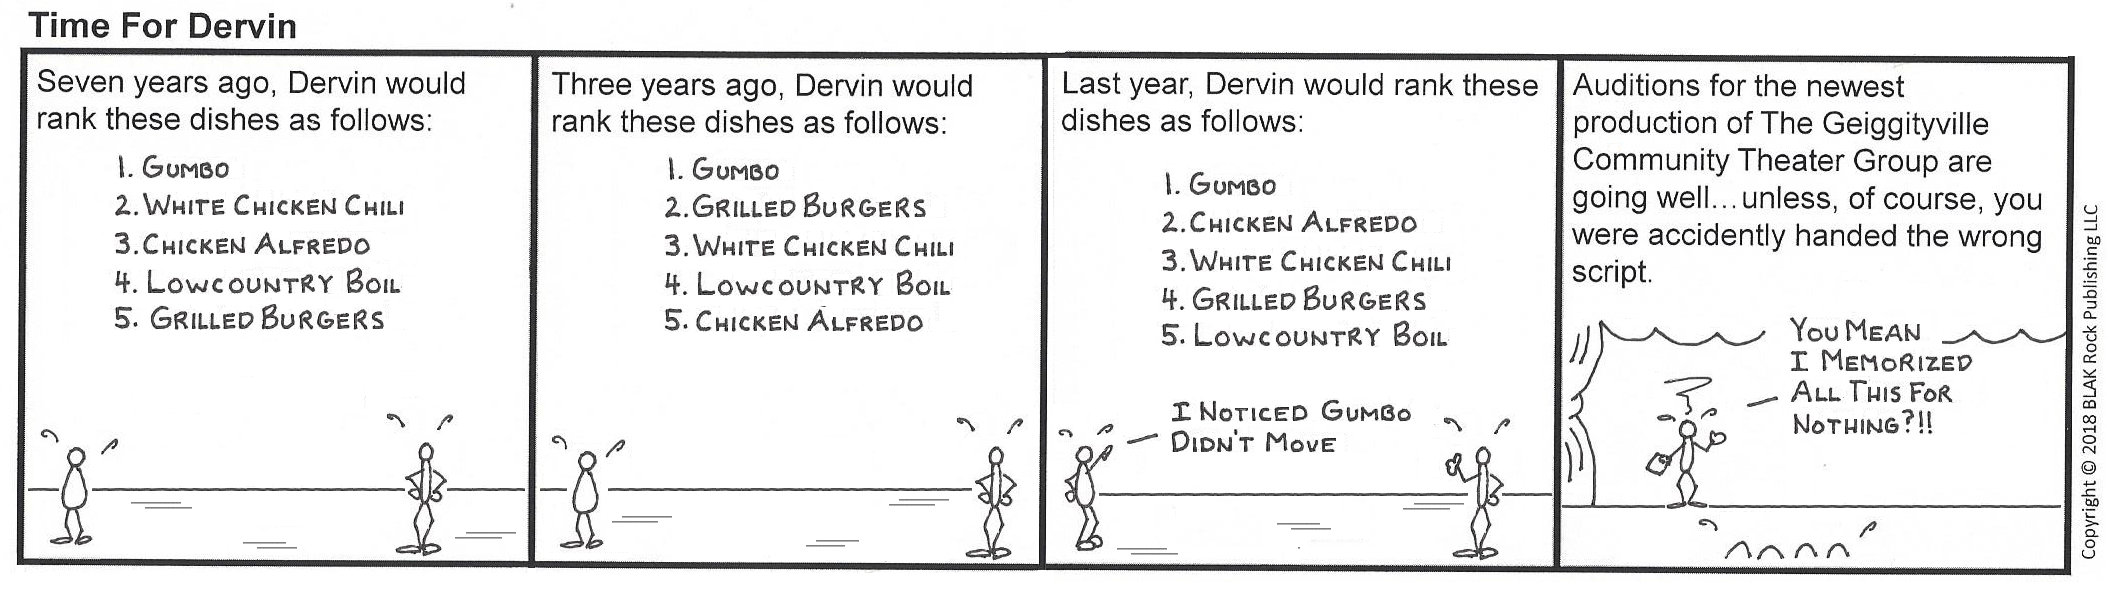 Time For Dervin - Strip Final - 2018-09-13